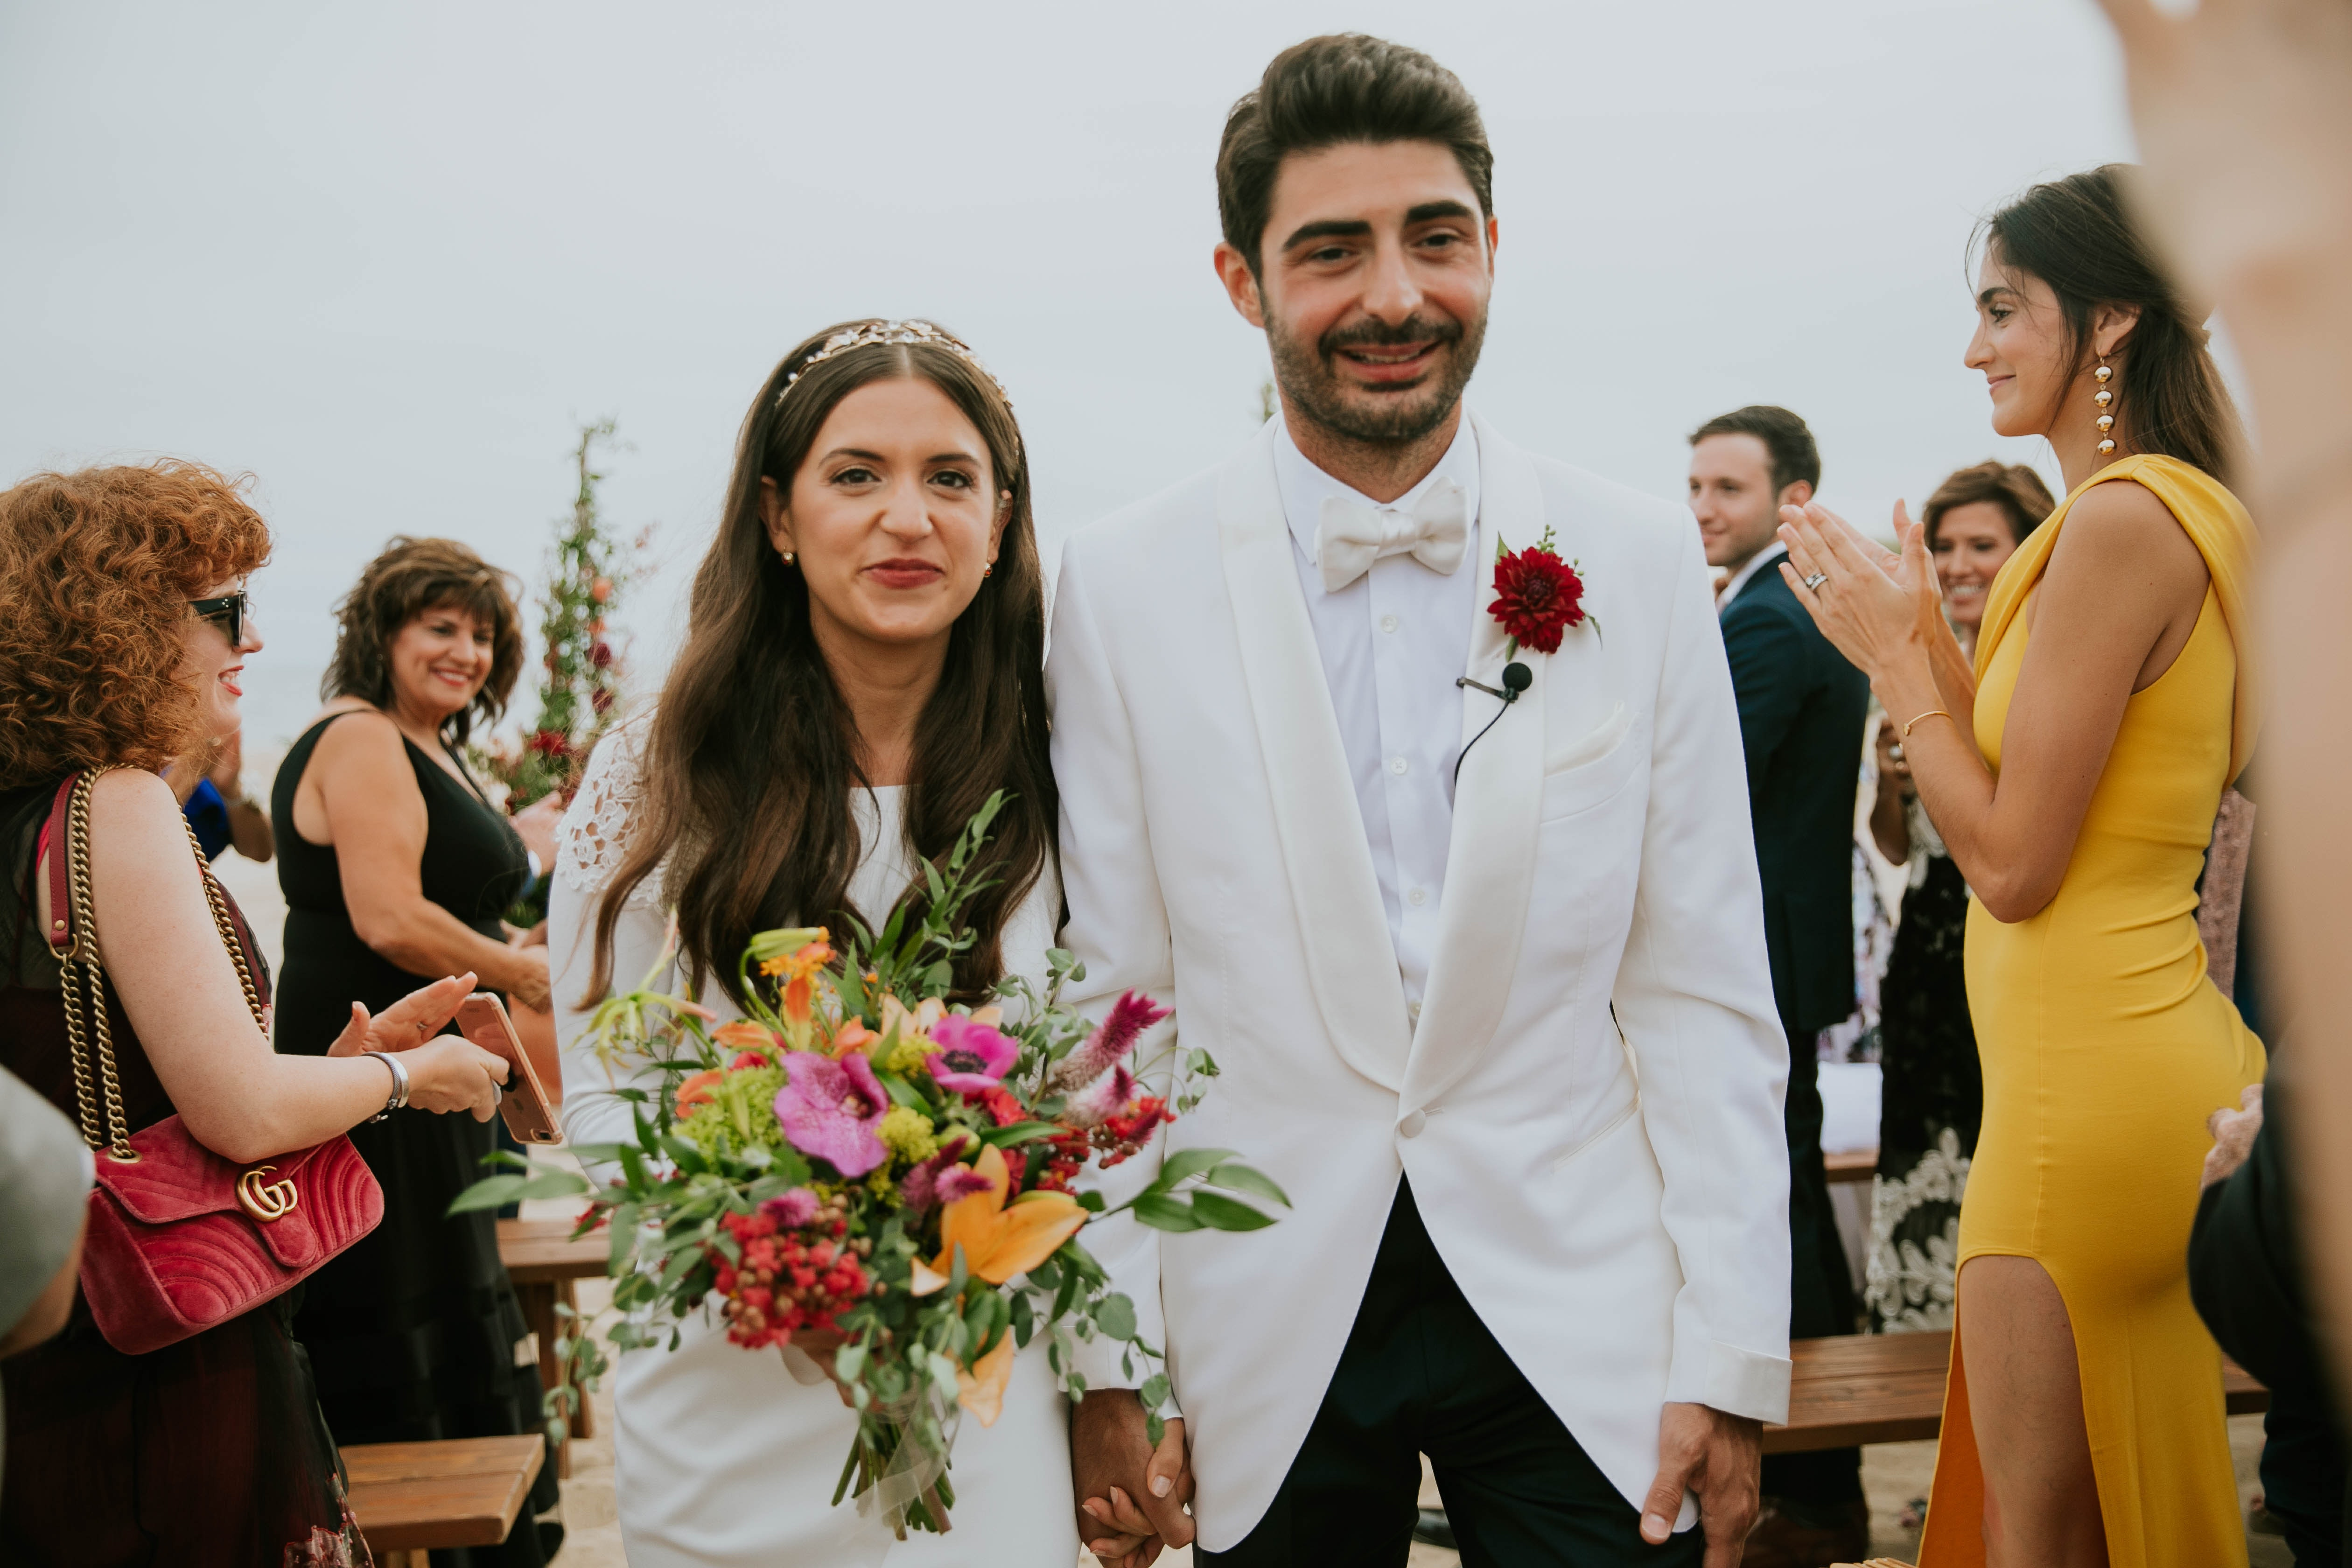 Wedding Guest Etiquette for a Covid-Safe Wedding